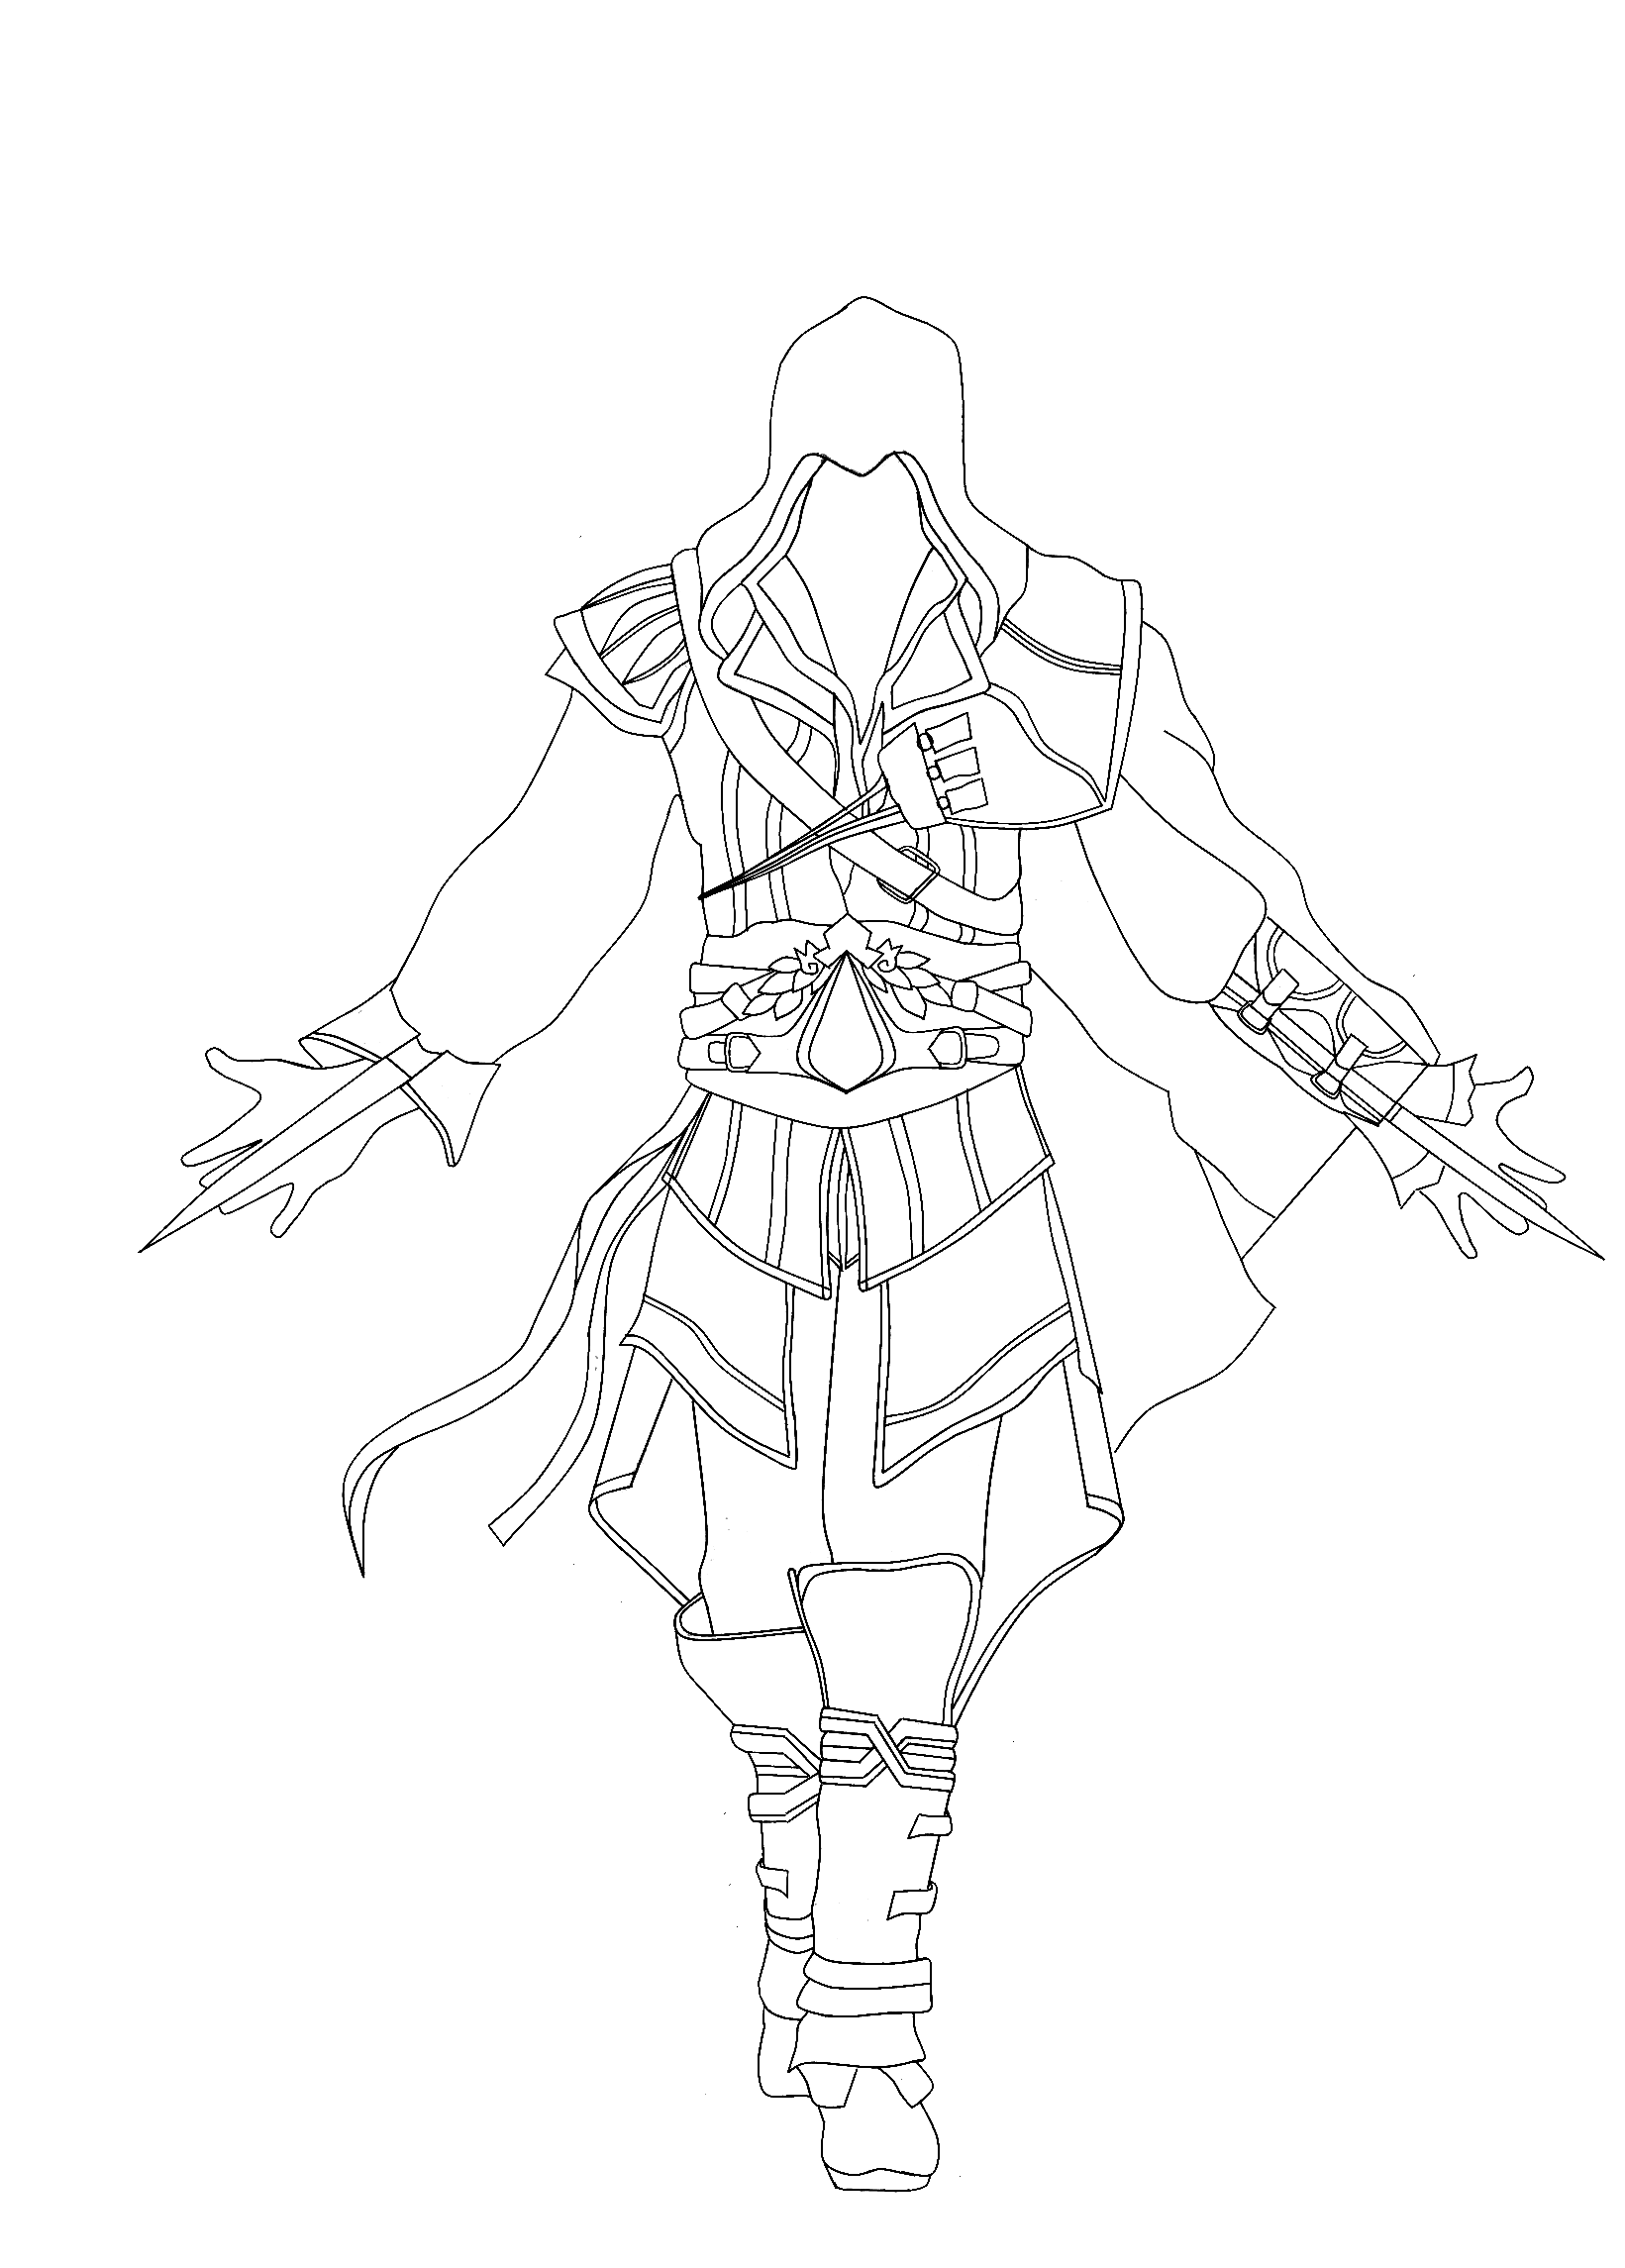 Free Assassin Creed Coloring Pages Holidays Birthdays